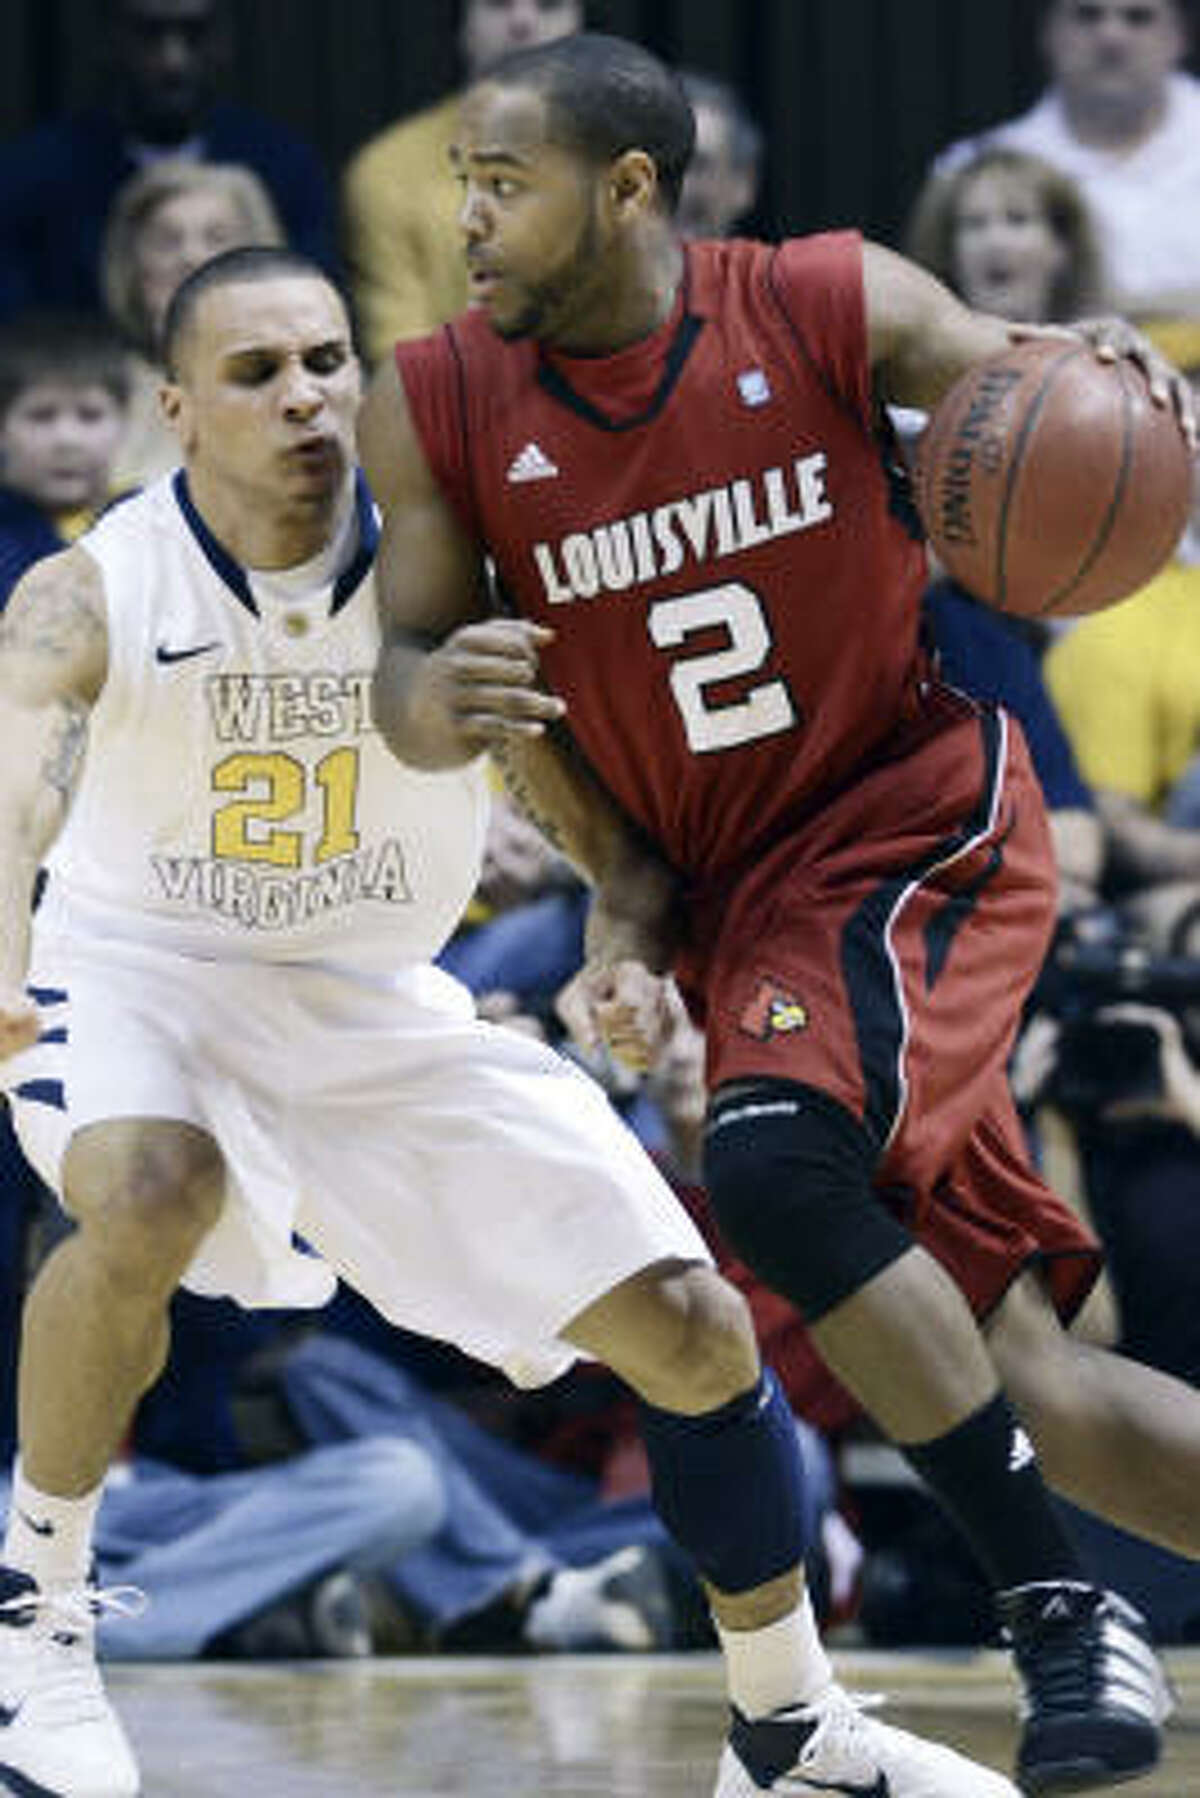 4 Louisville Cardinals (25-9) . Finish and bid: 12-6, third place in Big East; at-large bid. . Coach: Rick Pitino (10th season). . Best player: G Preston Knowles, 6-1, Sr., 14.8 ppg, 38.5 3 pt. pct. . Best wins: at UConn, Syracuse, Pitt. . Road to Reliant: 805 miles. . Notable: They've dealt with numerous injuries, the latest to leading rebounder Rakeem Buckles. They share the ball well (sixth in assists, 17.5) and rely heavily on 3-pointers (24.4 per game).